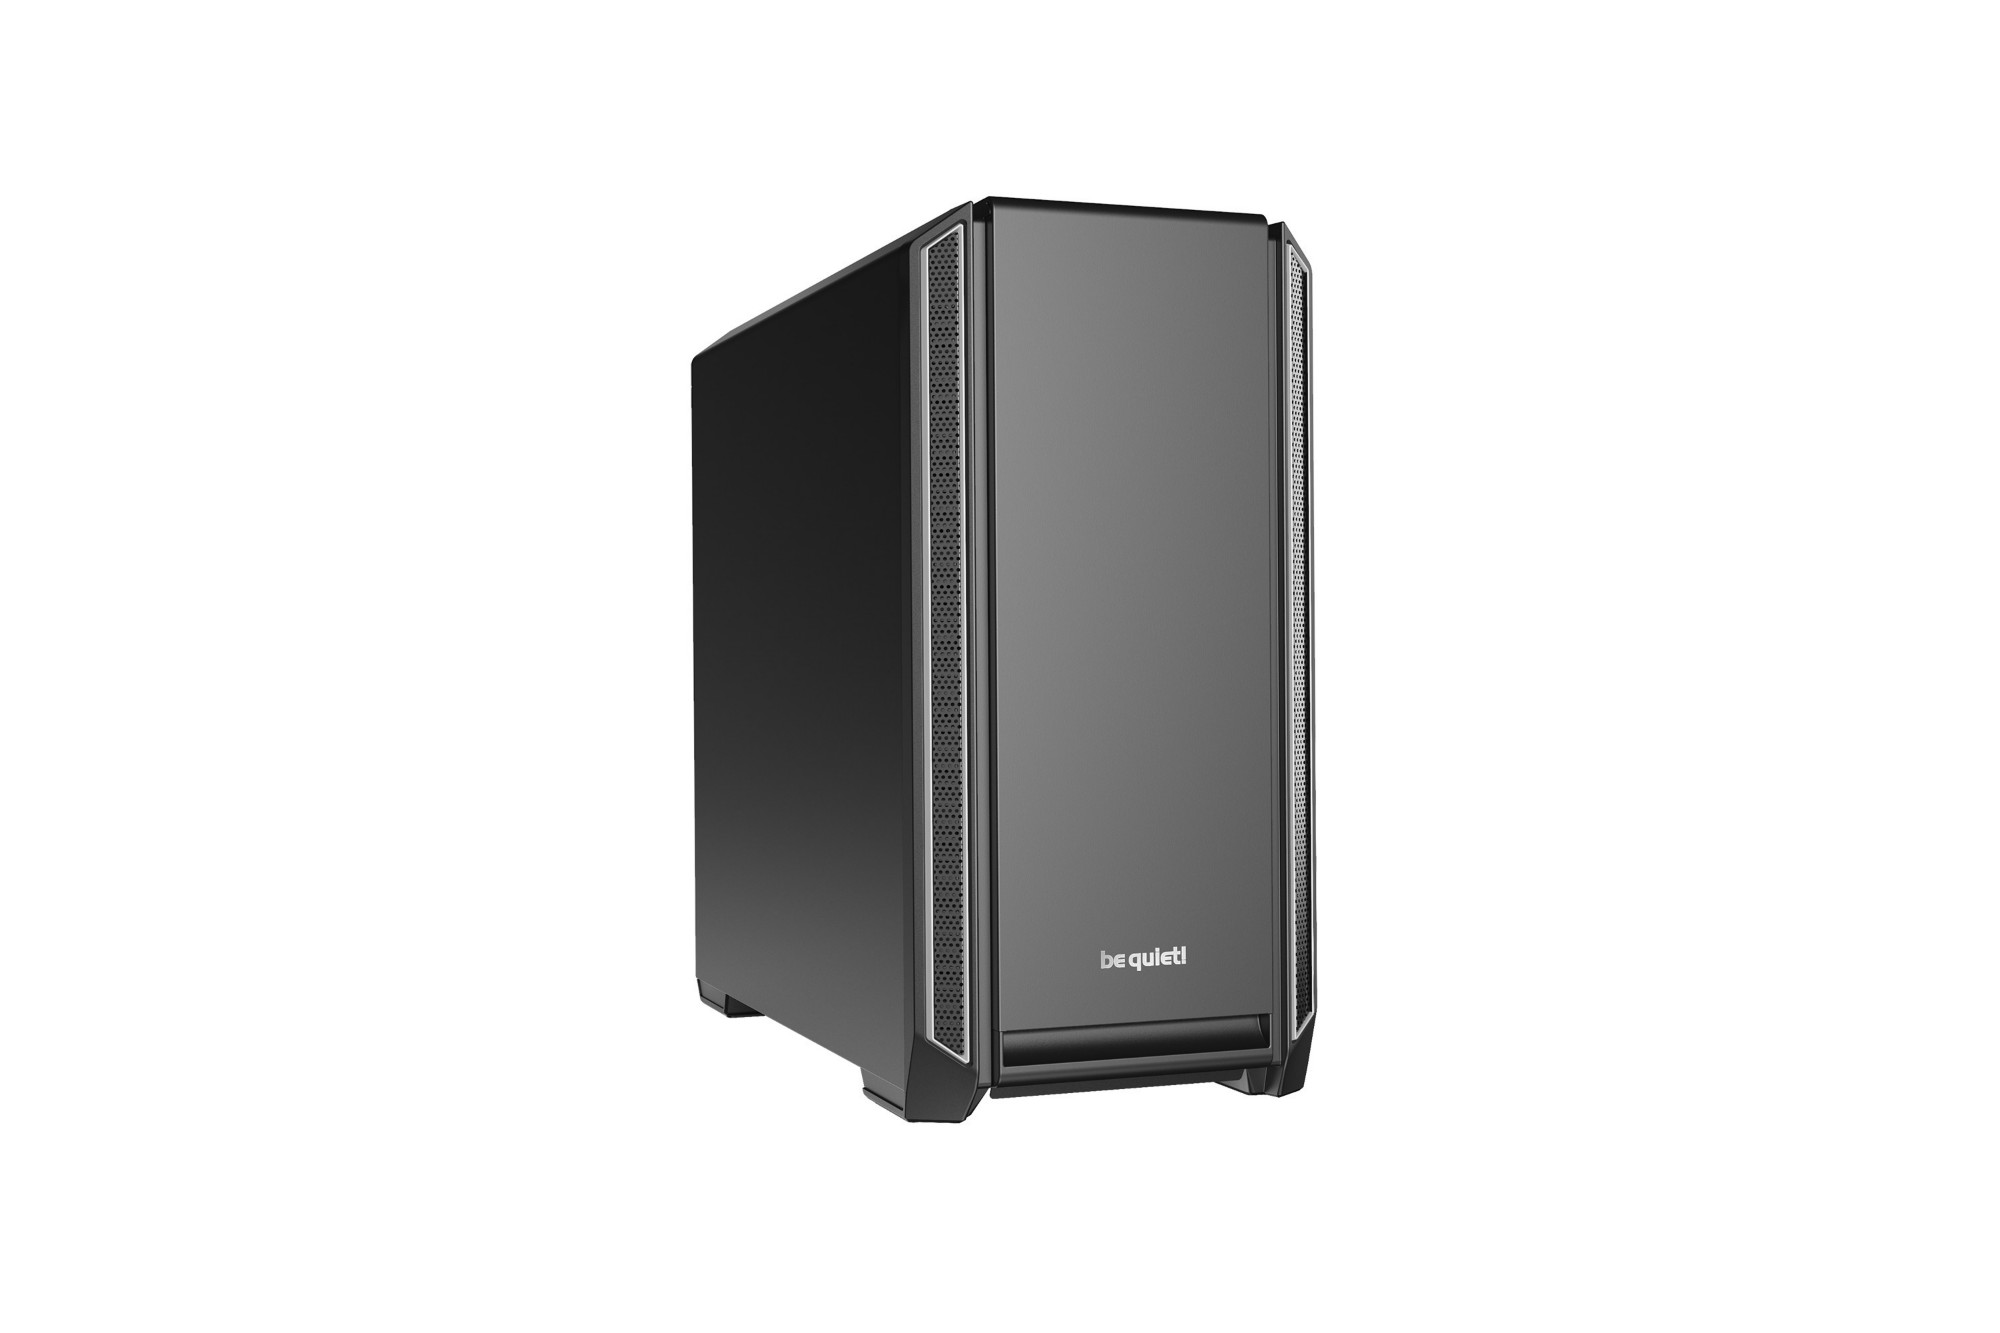 BE QUIET! BG027 SILENT BASE 601 COMPUTER CASE MIDI-TOWER BLACK, SILVER